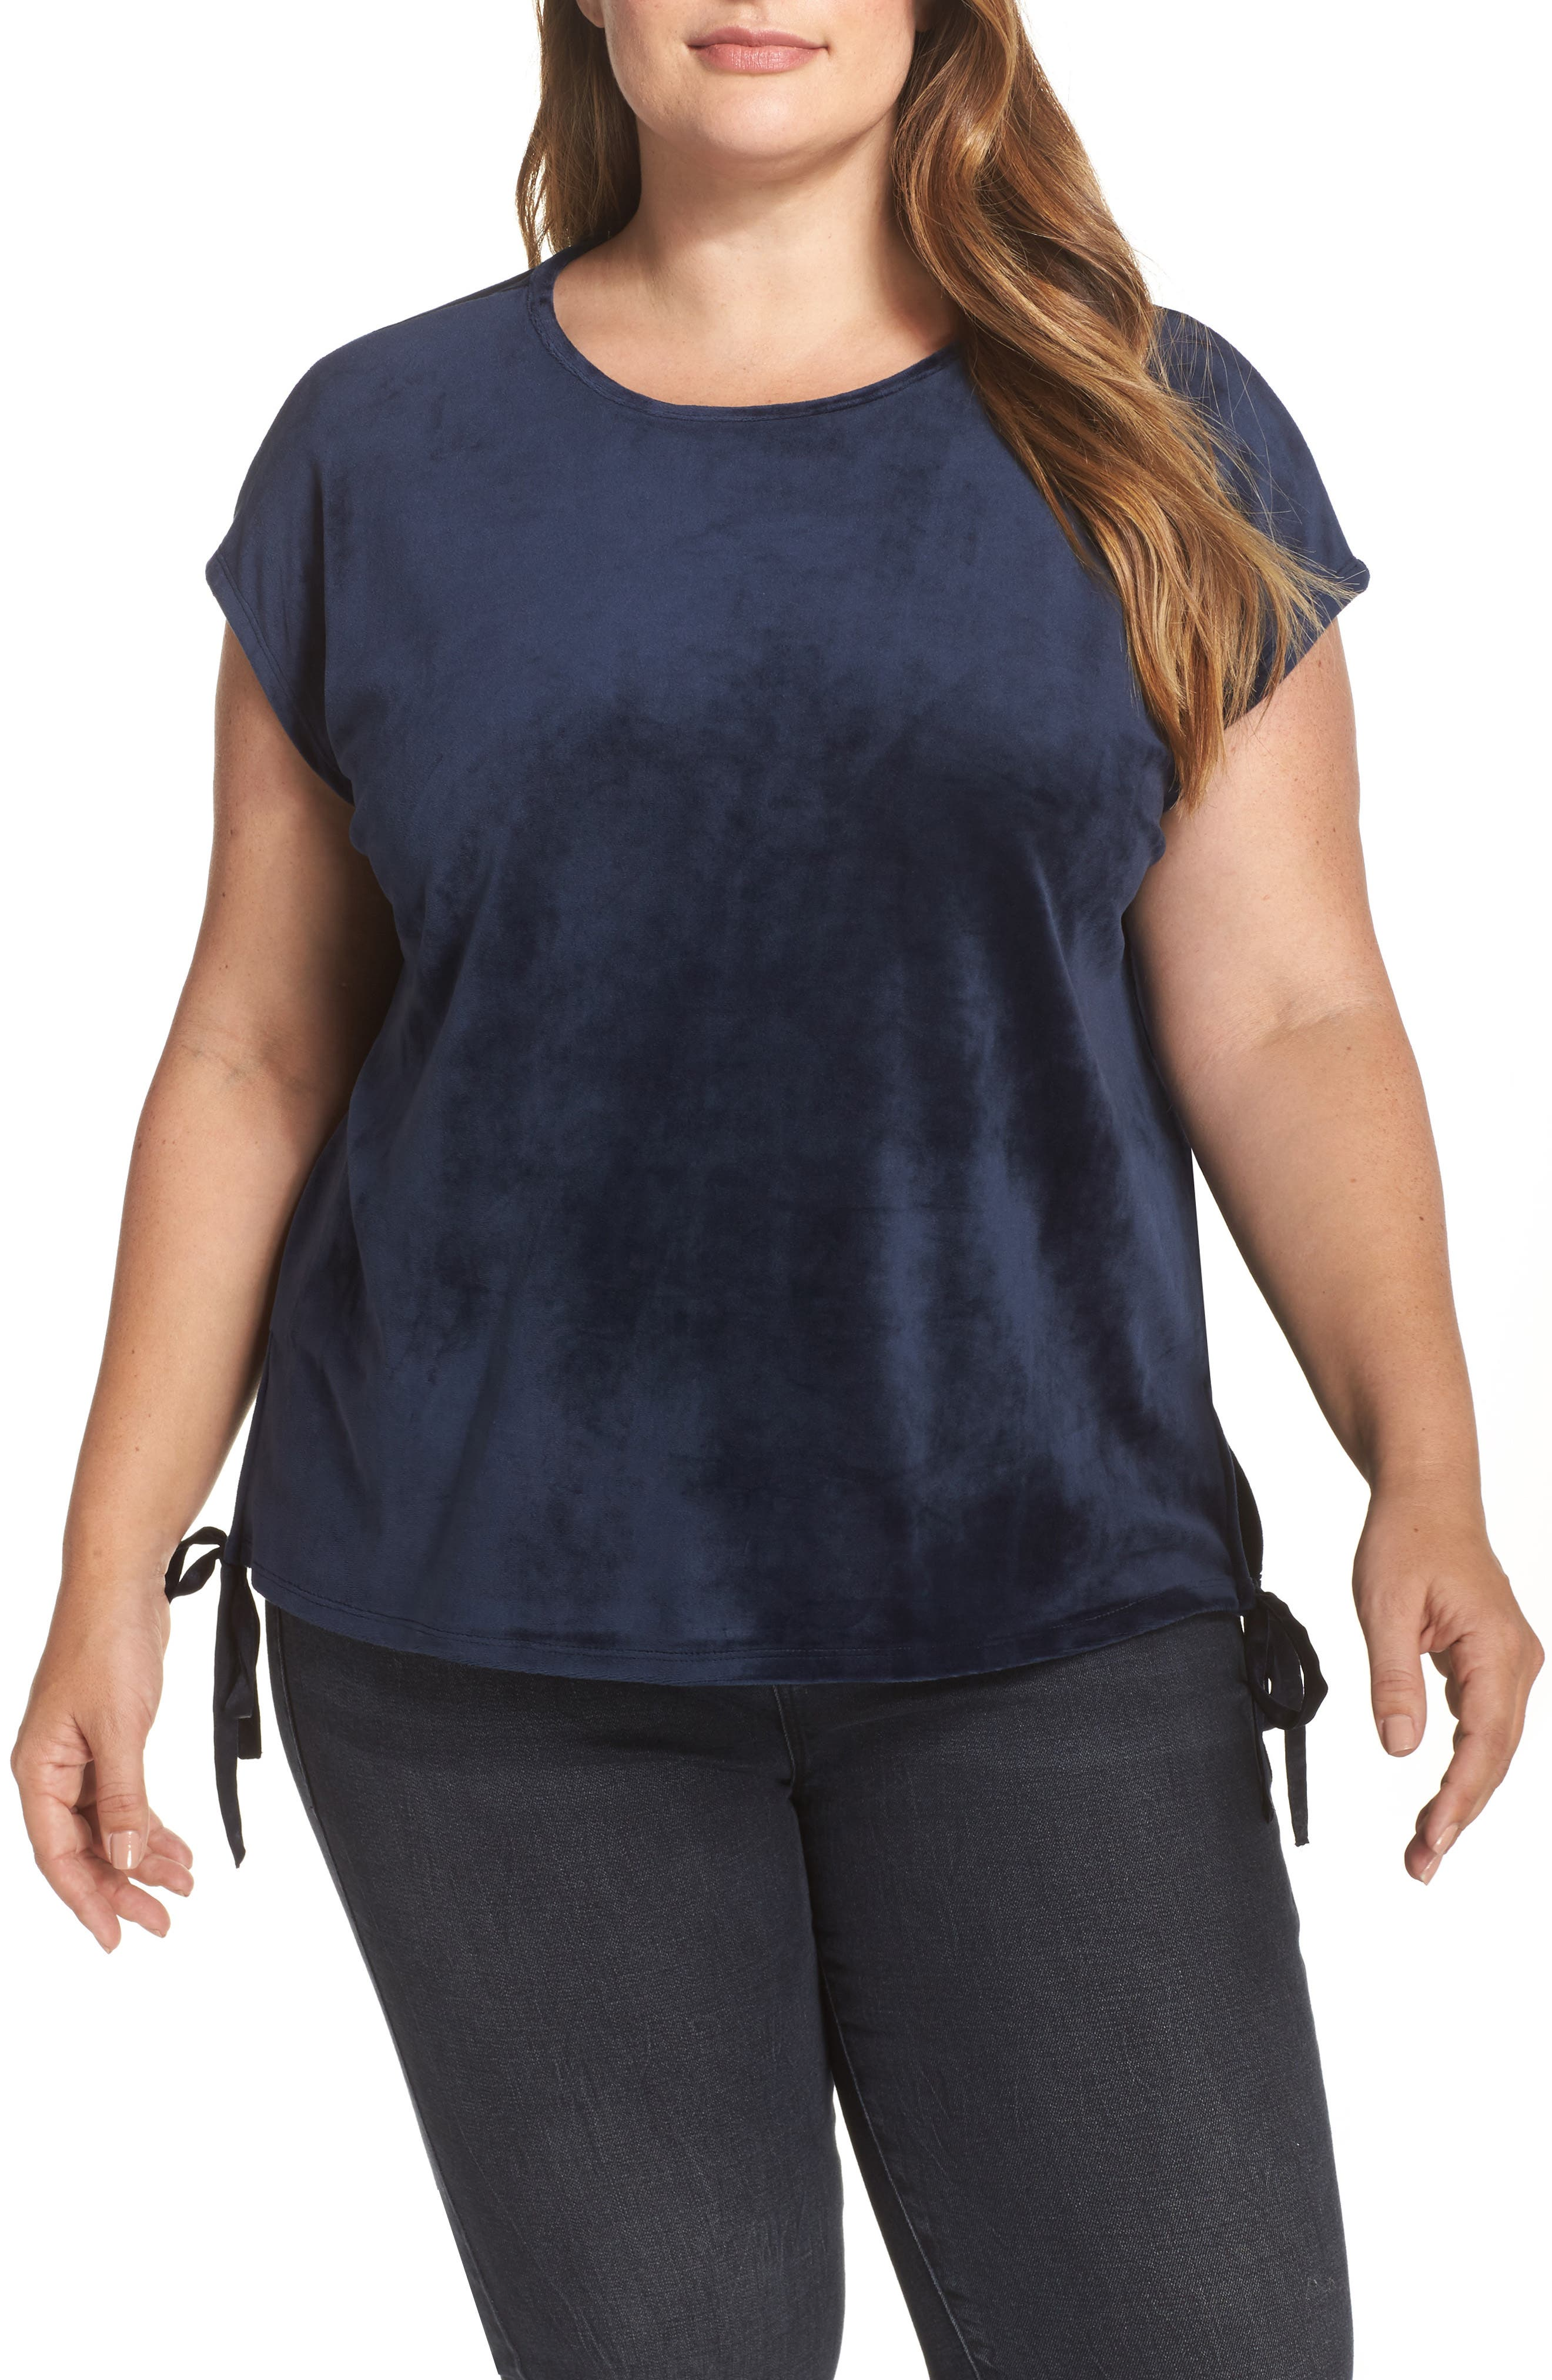 Alternate Image 1 Selected - Two by Vince Camuto Side Tie Velour Top (Plus Size)